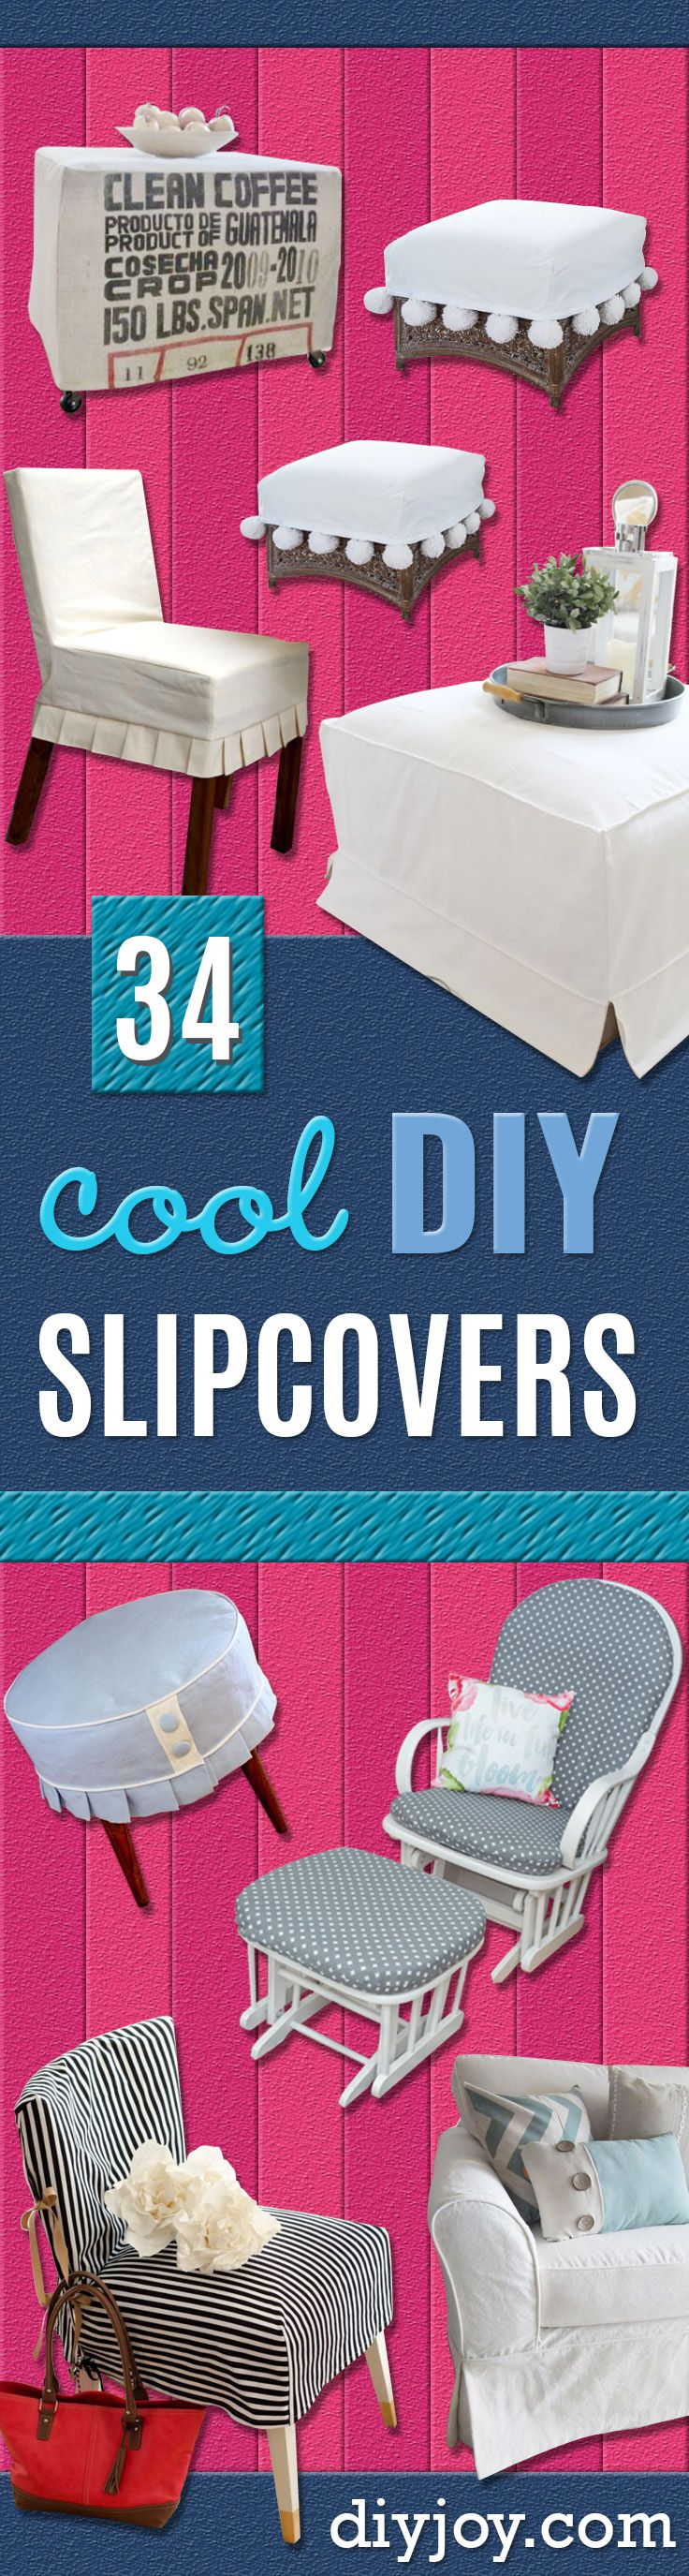 DIY Slipcovers – Do It Yourself Slip Covers For Furniture – No Sew Ideas, Easy F…